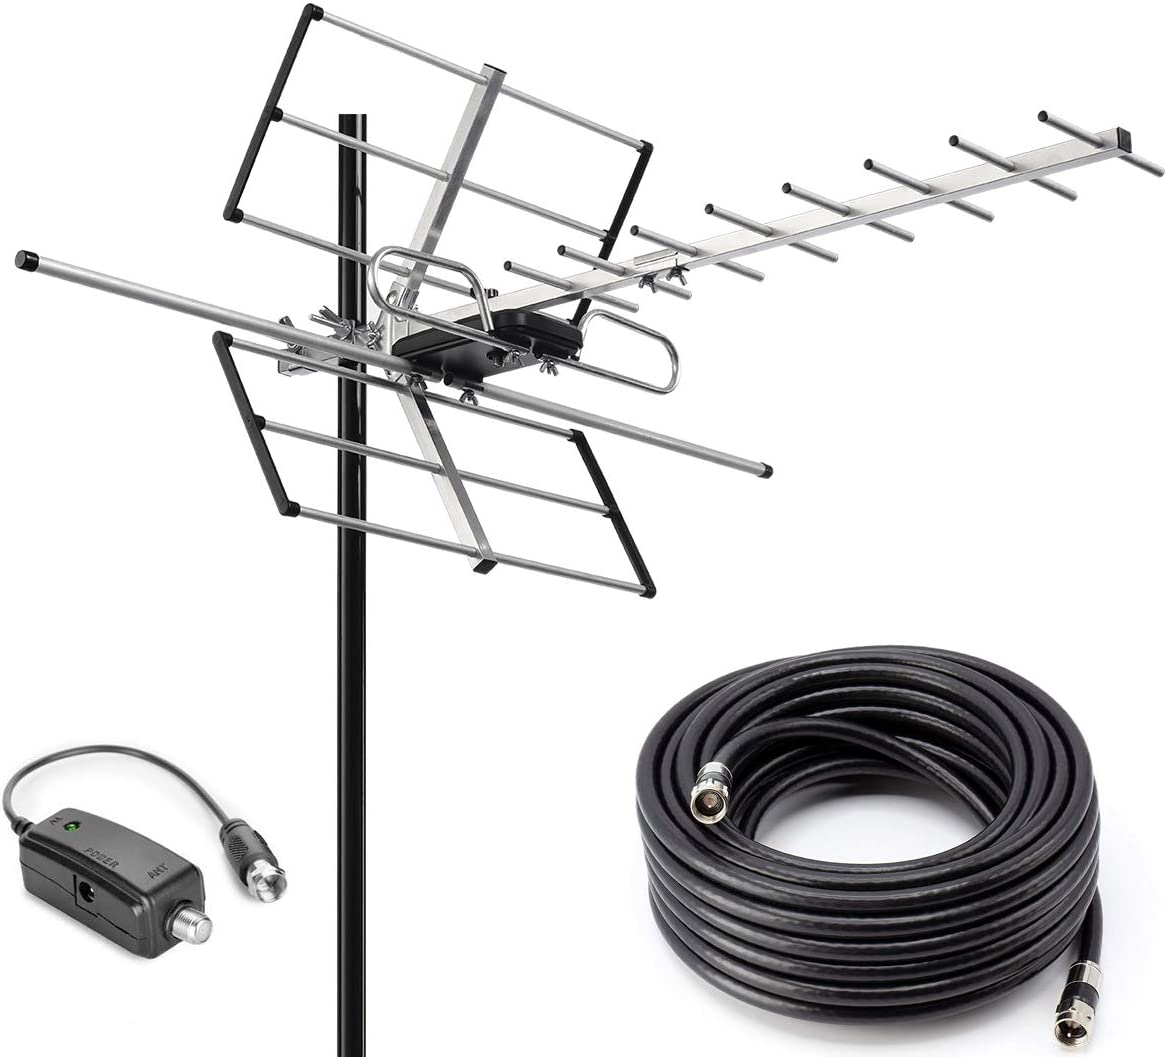 PBD Outdoor Digital Amplified Yagi HDTV Antenna, Built-in High Gain and Low Noise Amplifier